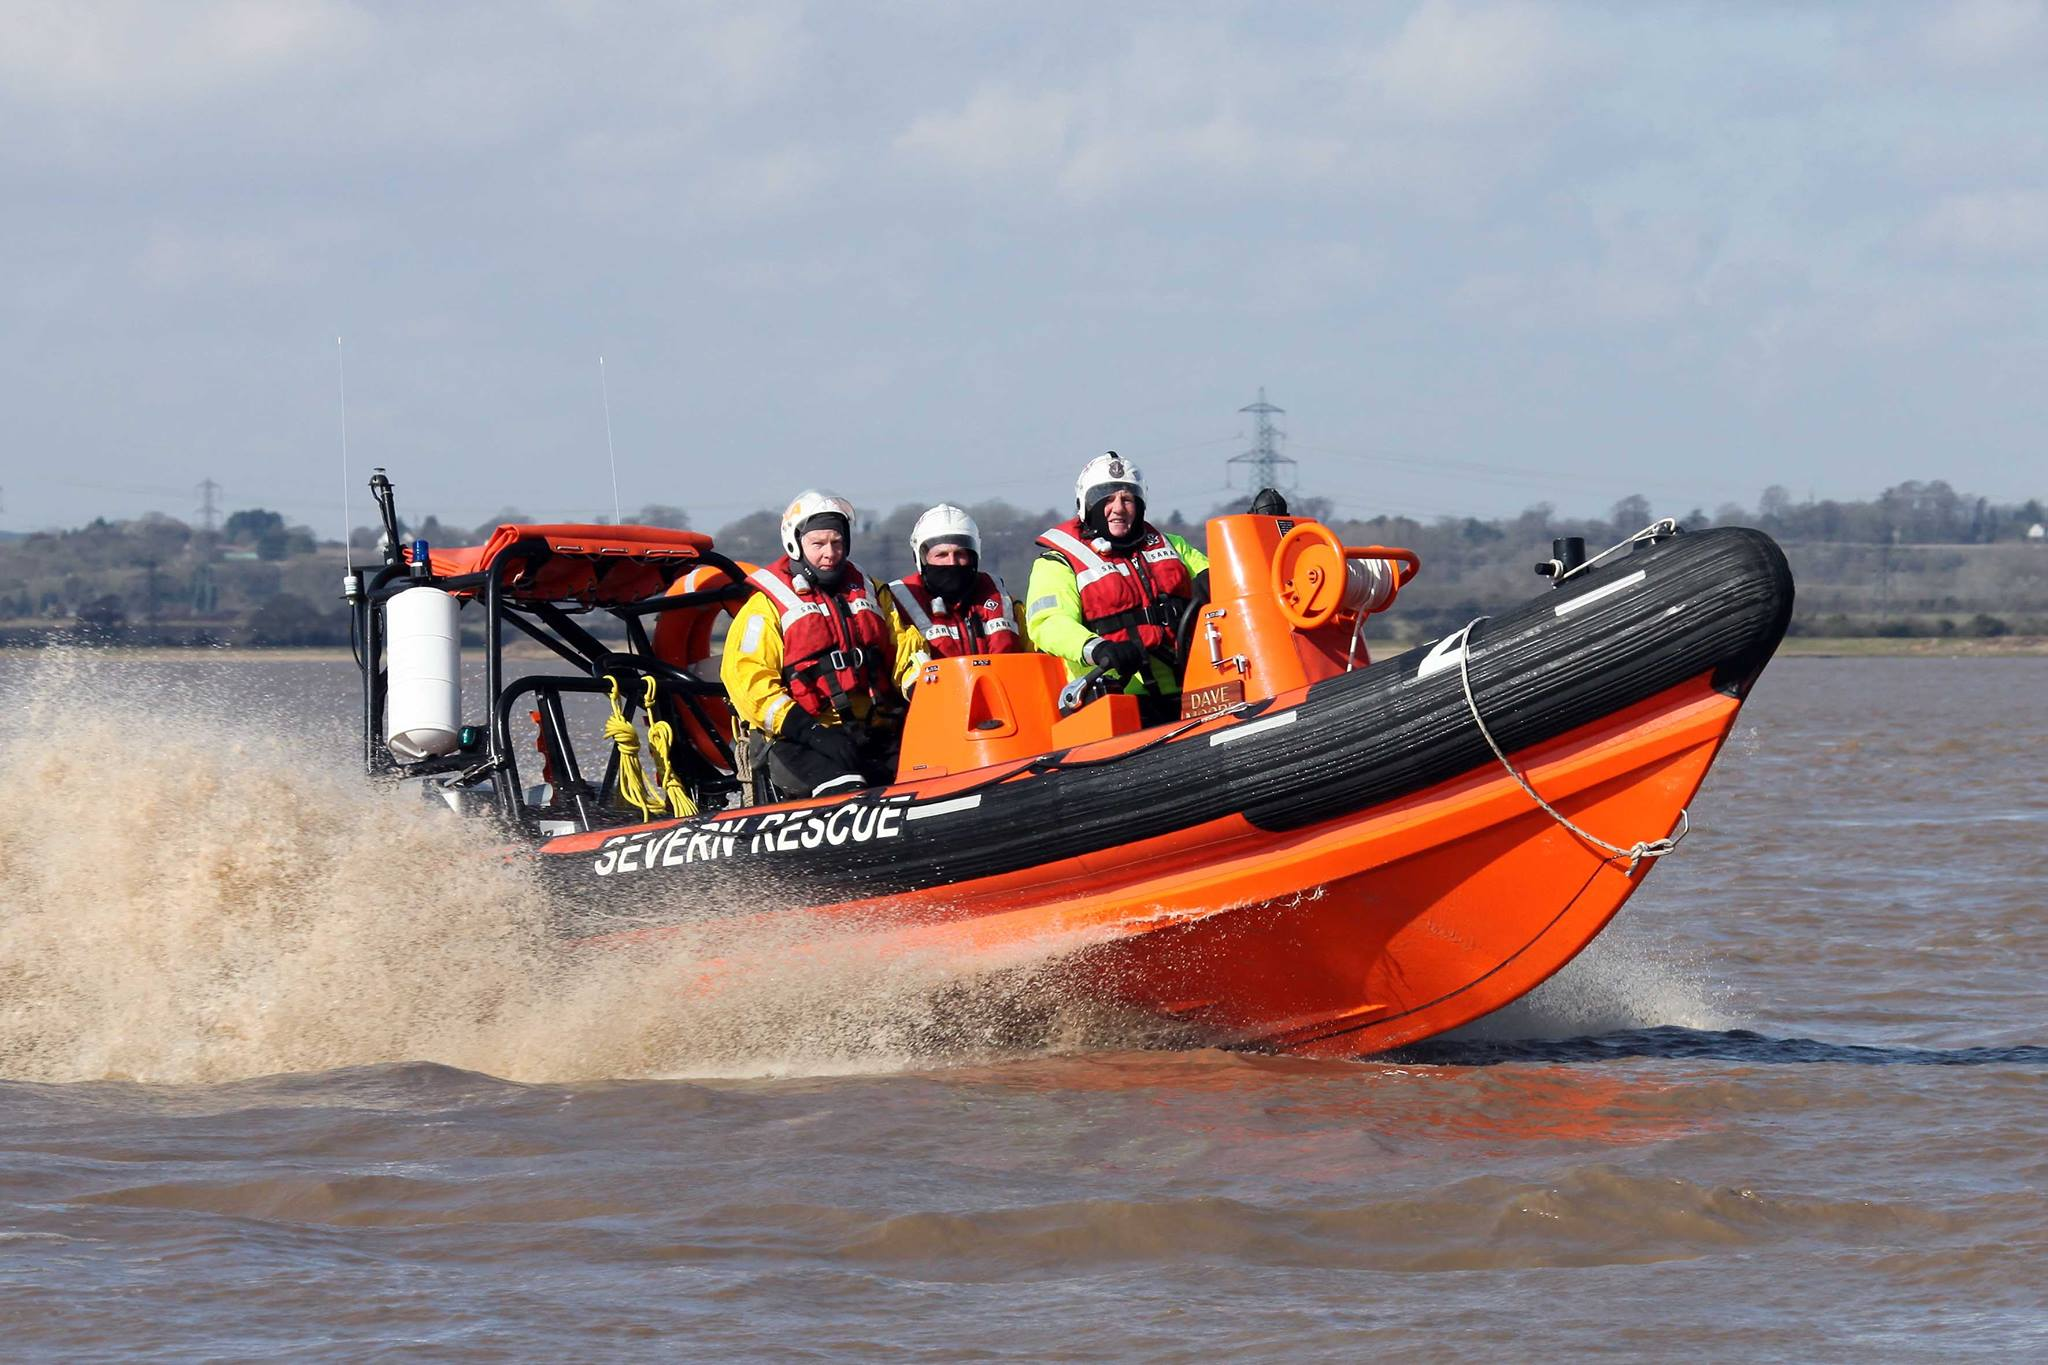 A new lifeboat to help save lives on River Severn is on its way